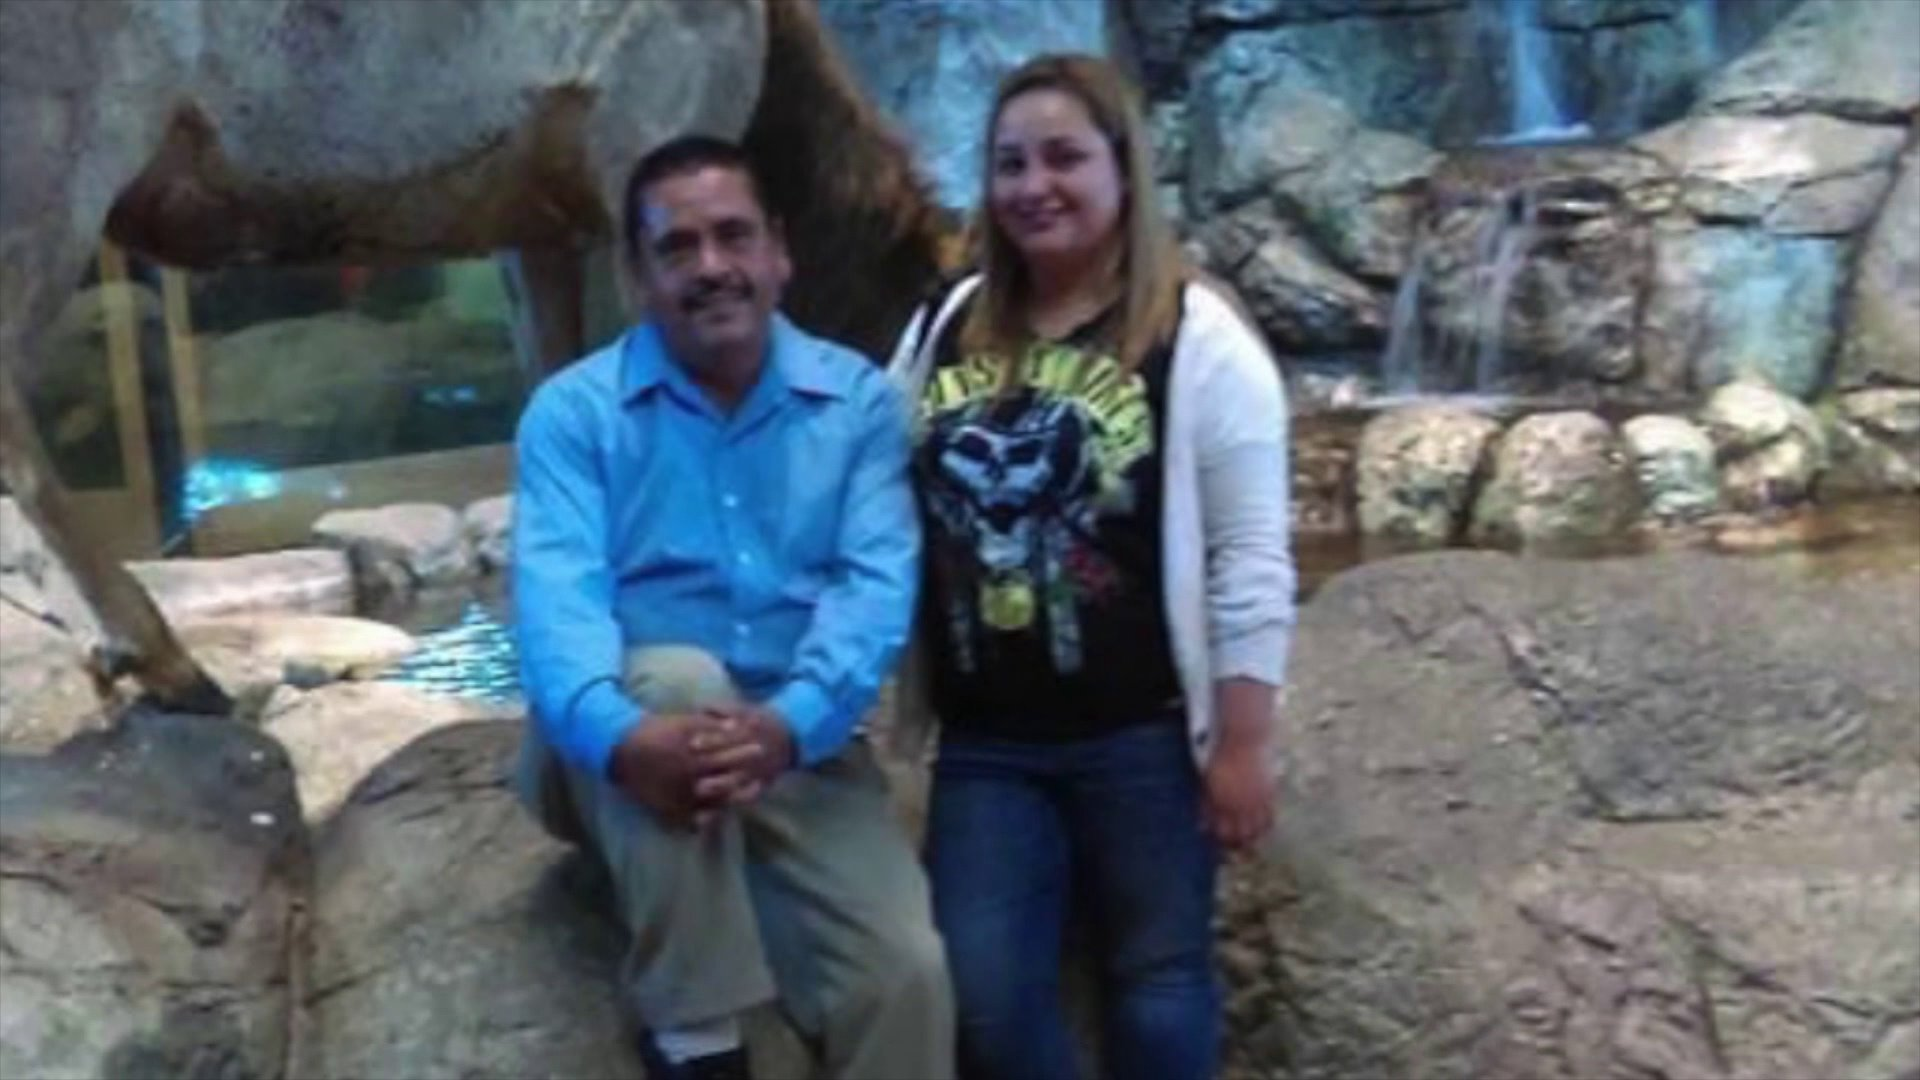 Humberto Ruelas-Rivas, 60, and his 38-year-old wife Karina Bonilla died just one day apart from COVID-19.